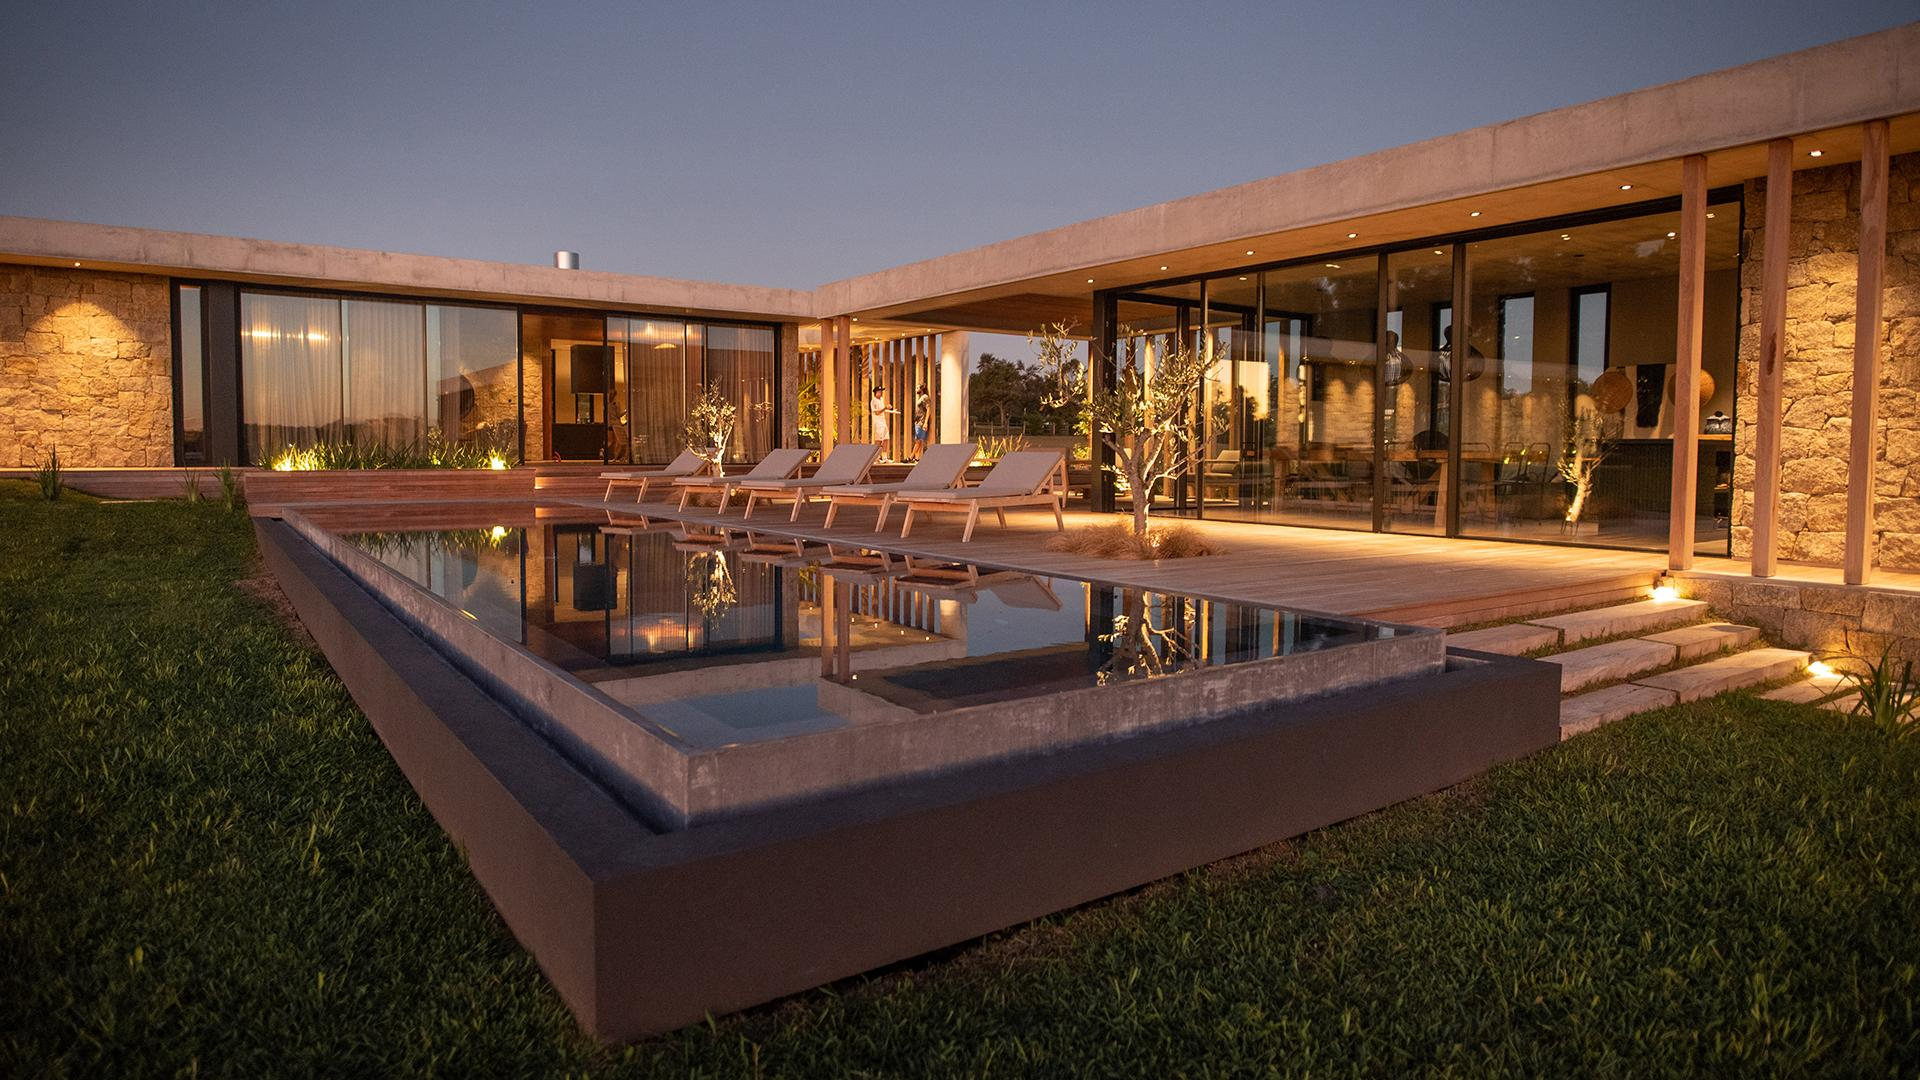 Modern Luxury Villa located in Manantiales, Punta del Este, Uruguay, listed by Curiocity Villas.